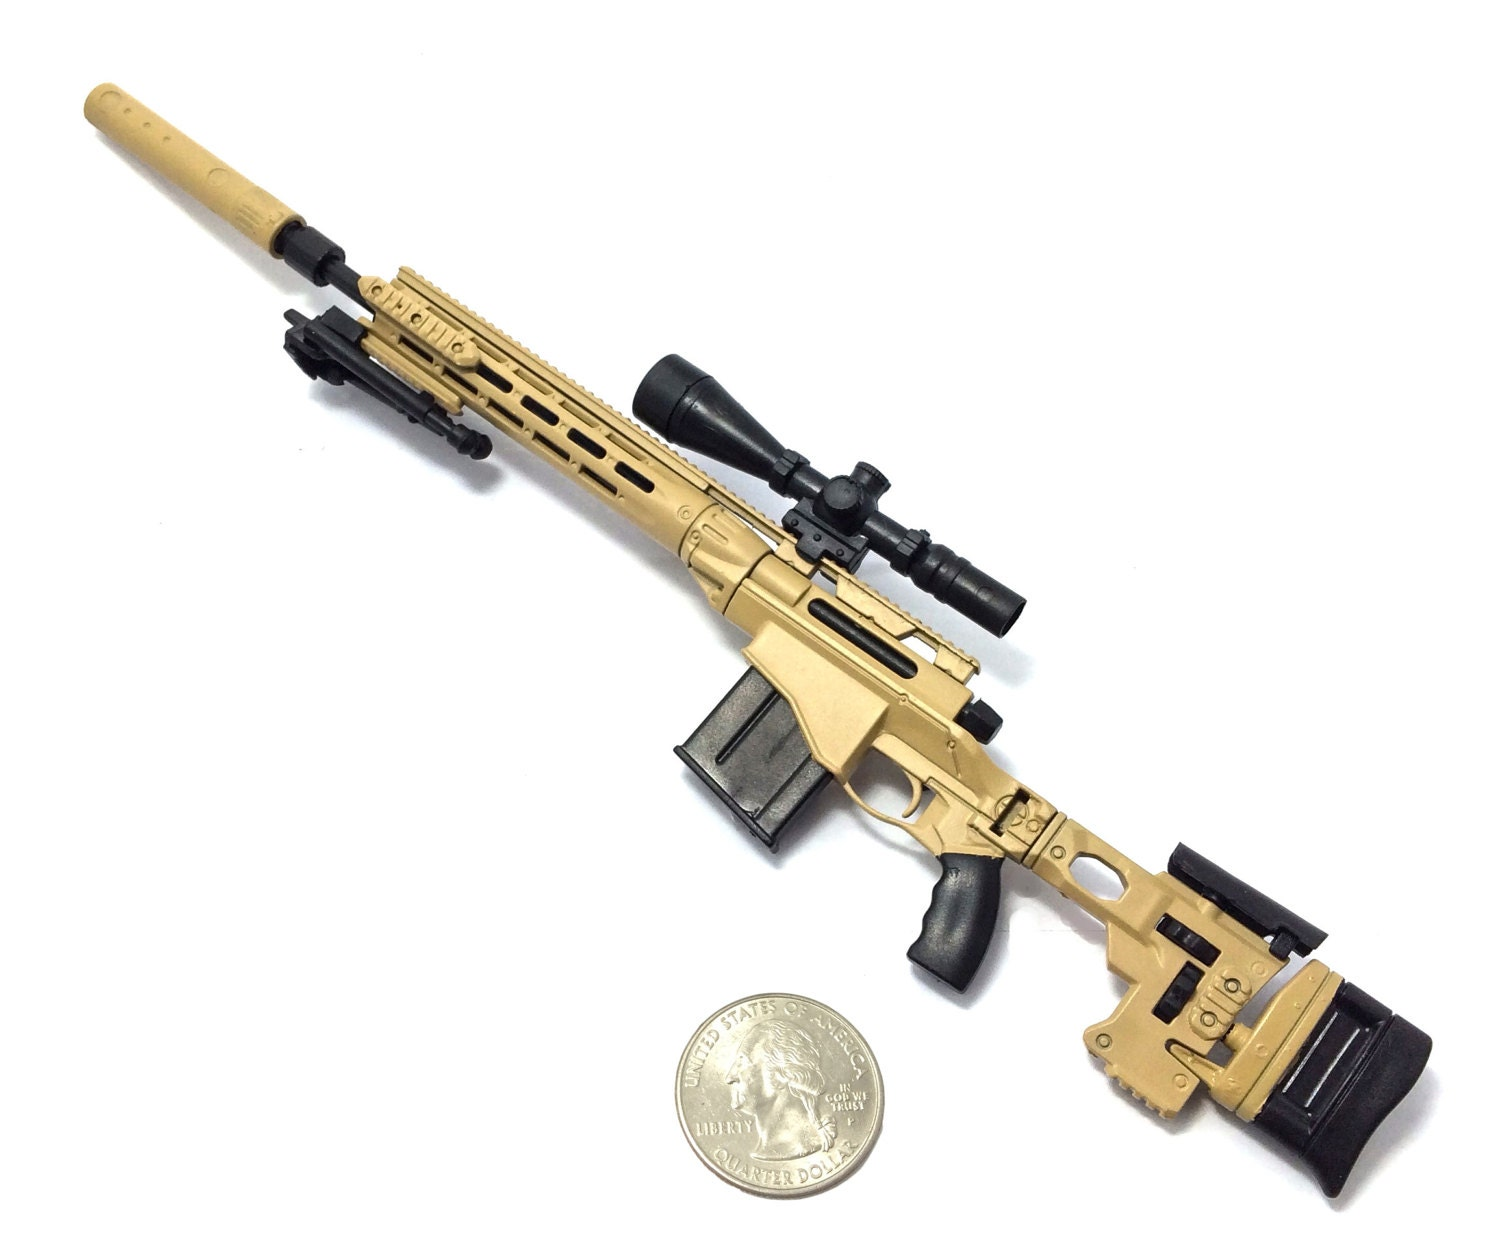 1/6 Scale Custom Made Desert MSR Sniper Rifle US Army